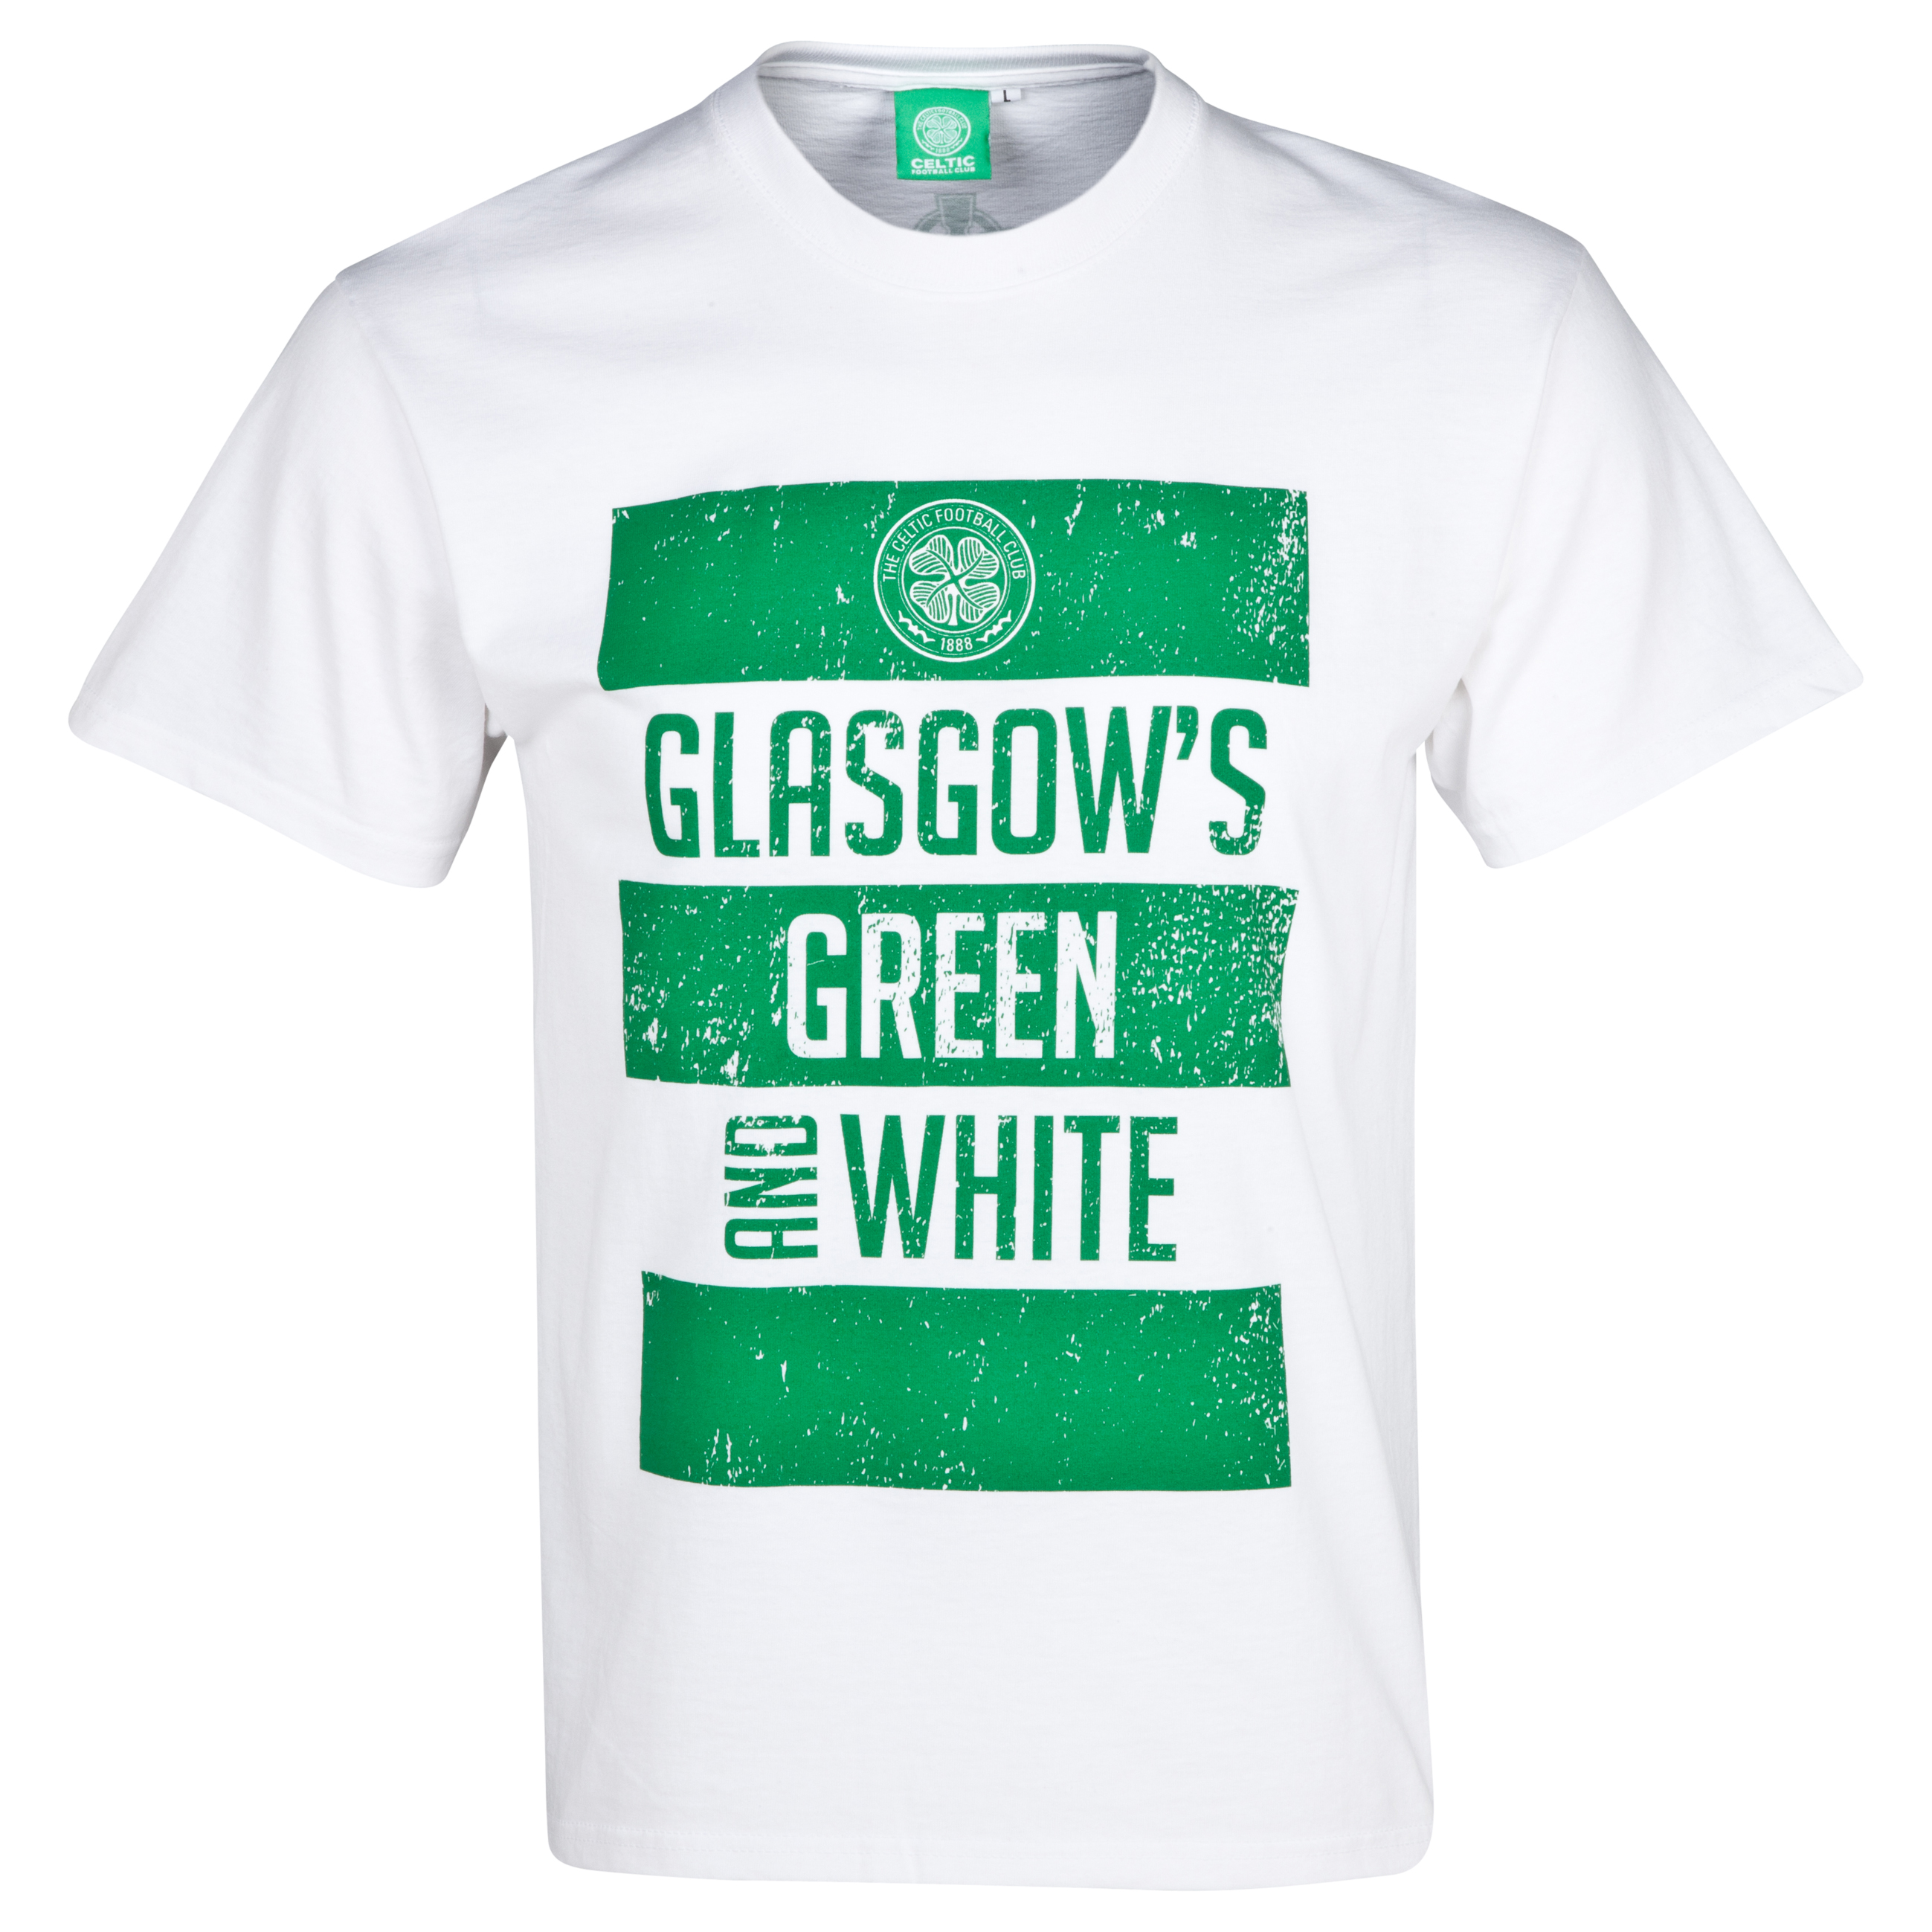 Just Arrived - Double Winners 13 T-Shirt